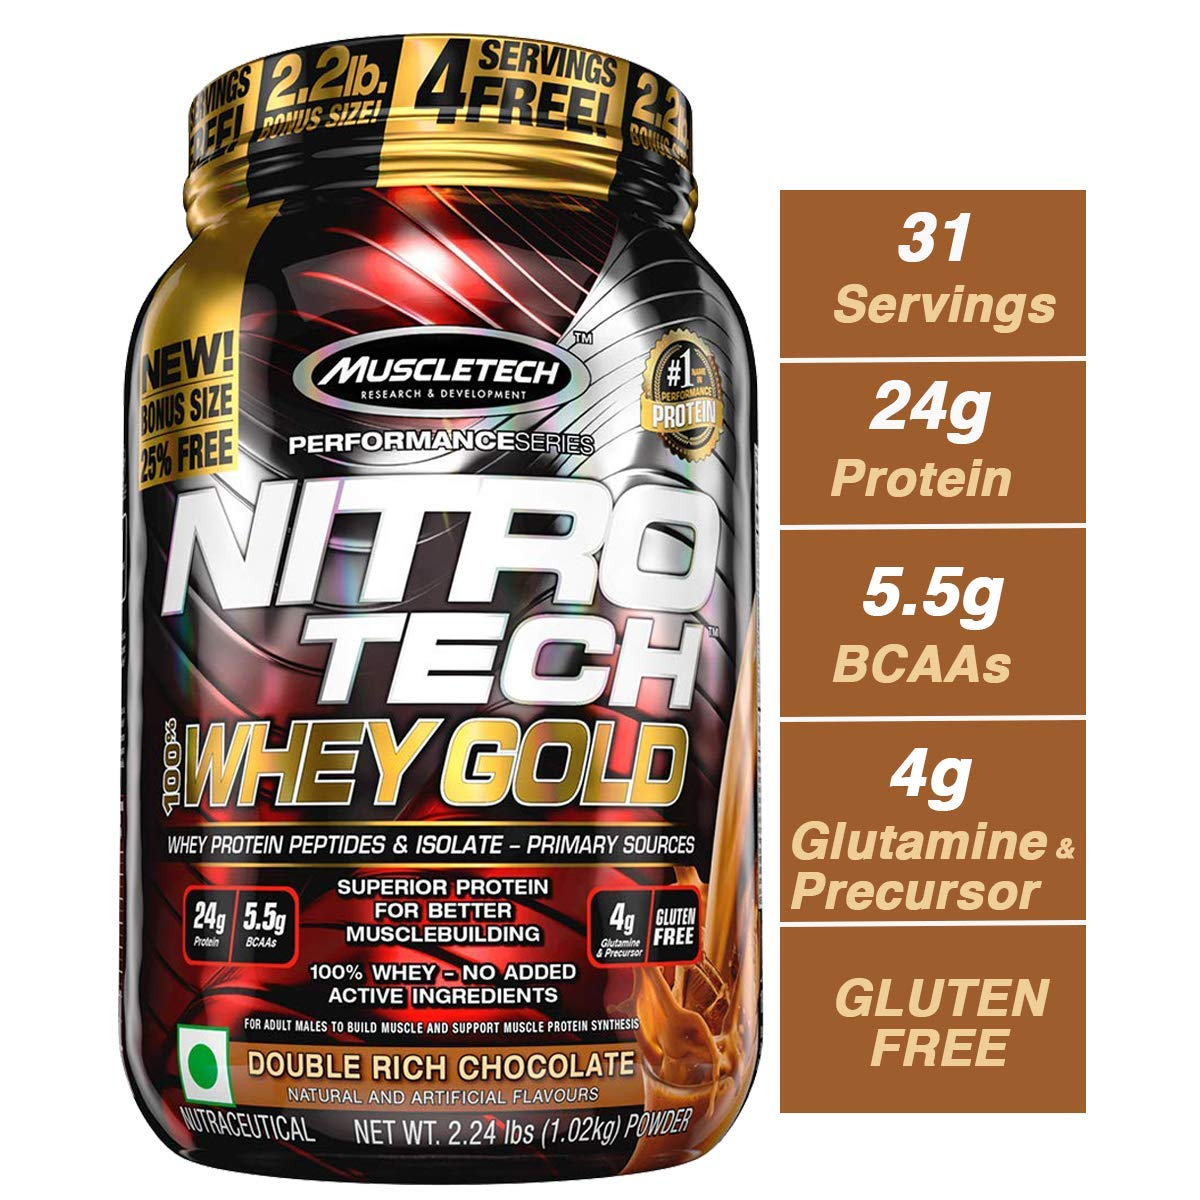 MuscleTech NitroTech Whey Gold, 100% Whey Protein Powder, Whey Isolate and Whey Peptides, Double Rich Chocolate, 2.2 Pound by MuscleTech